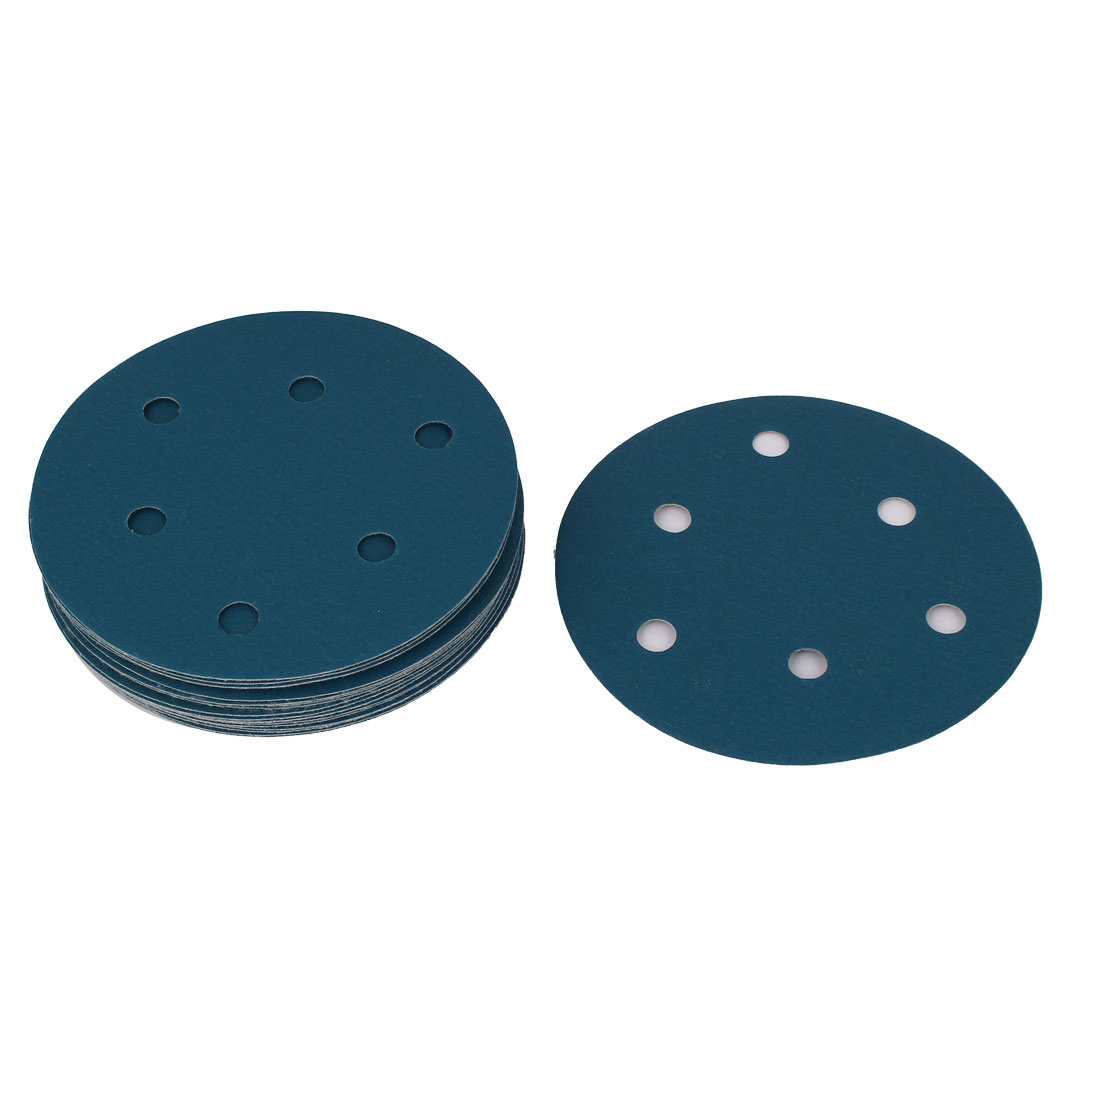 "5"" Sandpaper Auto Car Paint Polishing Sanding Disc Hook and Loop Fastener 6 Holes 320 Grit 20pcs"